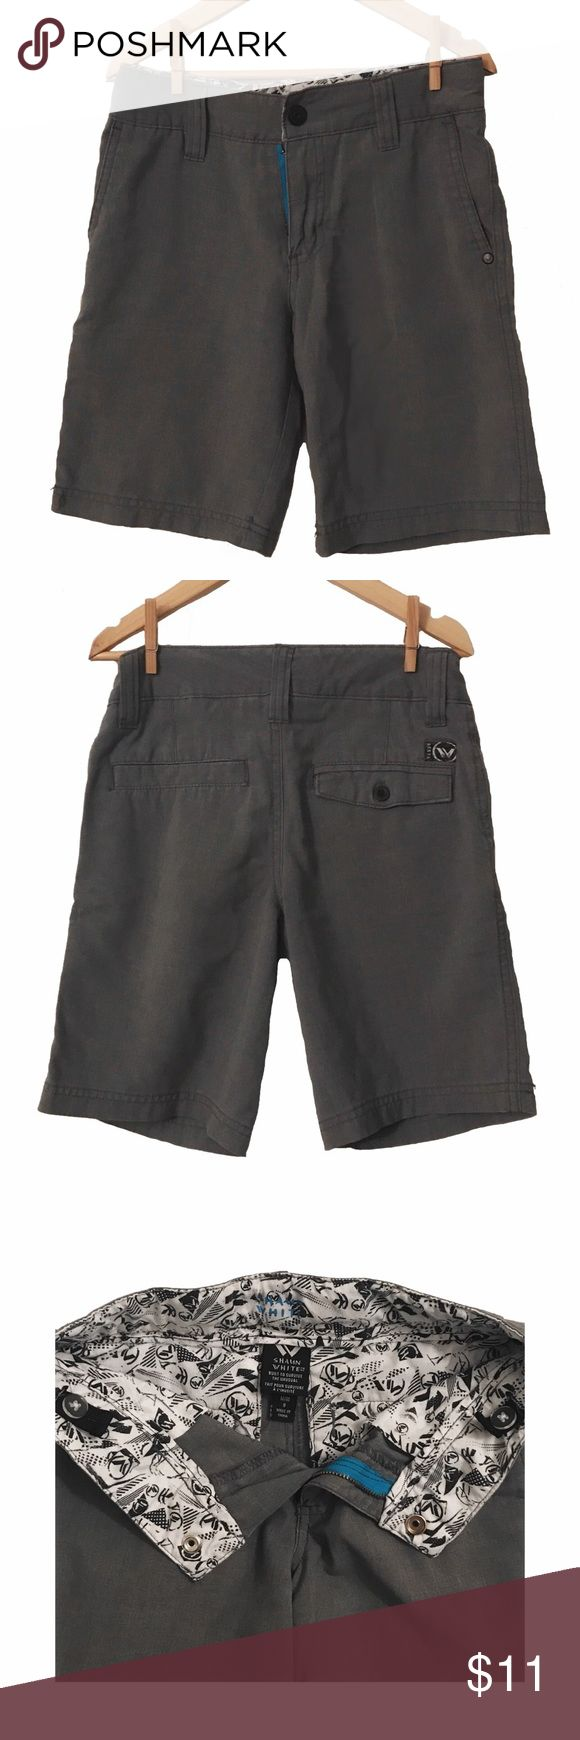 Shaun White Gray Boys Shorts Gray shorts with snap button & resizable, buttoned elastic in waist (see photo); 65% polyester 35% rayon Shaun White Bottoms Shorts